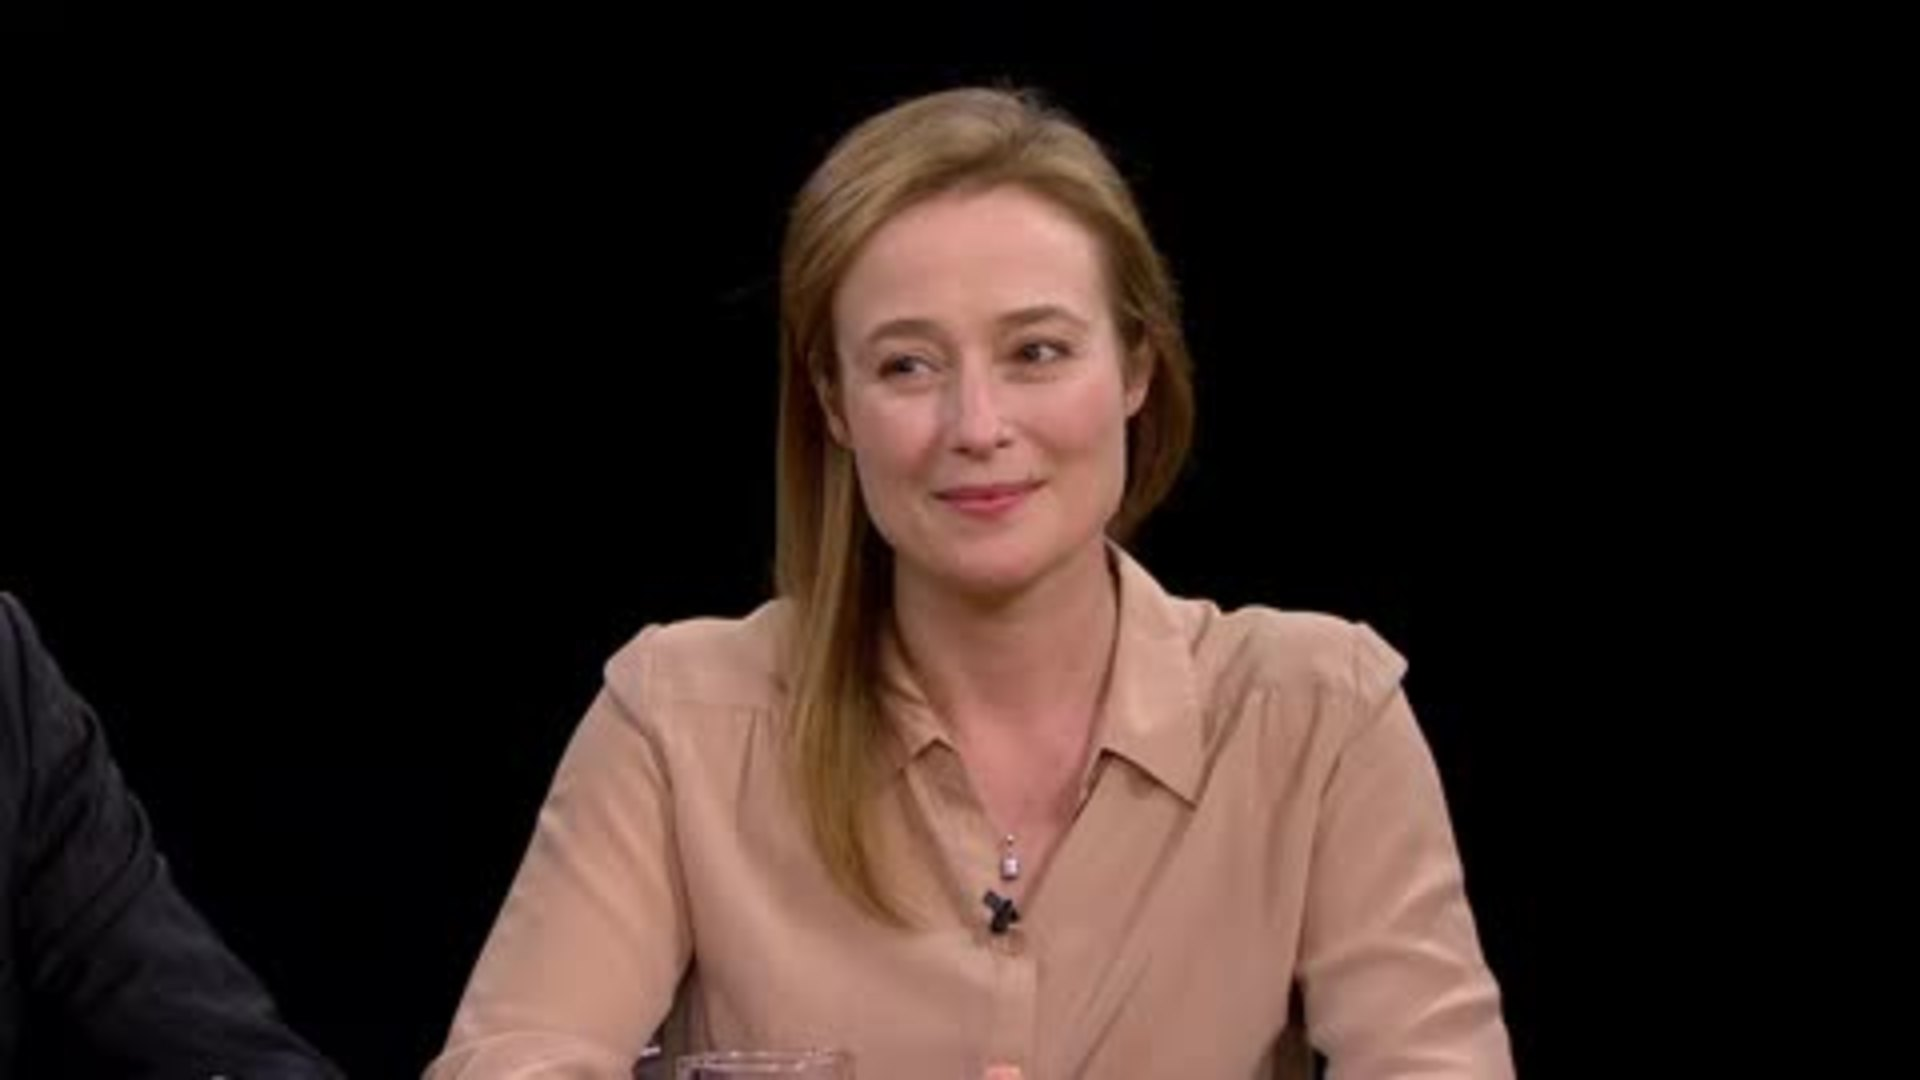 Discussion on this topic: Kelly Greenwood (born 1982), jennifer-ehle/